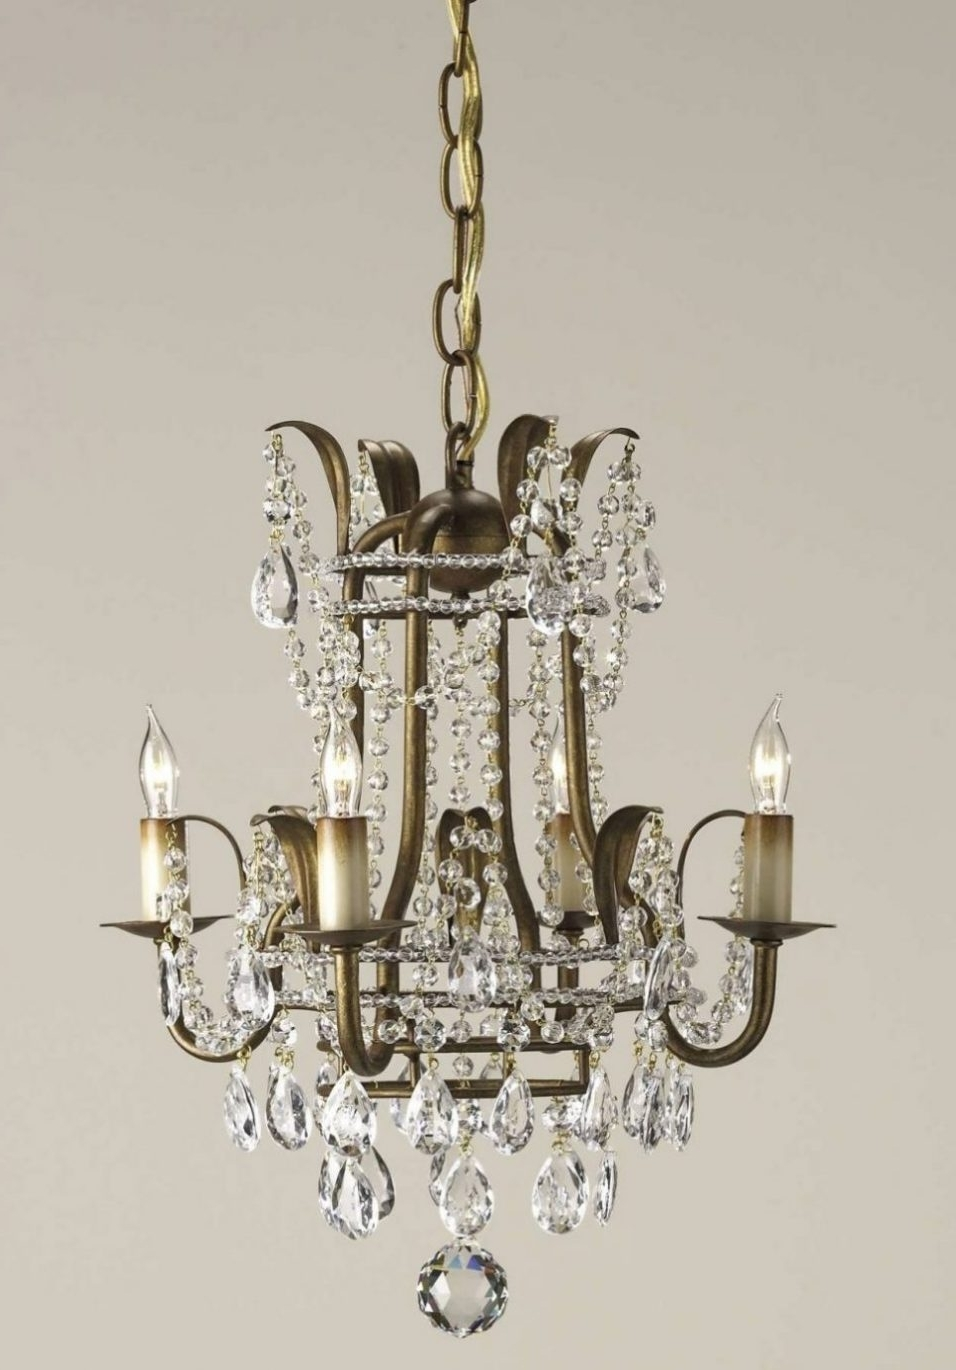 Latest Lighting : Vintage Modern Chandelier Contemporary Crystal Chandelier With Regard To Modern Wrought Iron Chandeliers (View 15 of 15)